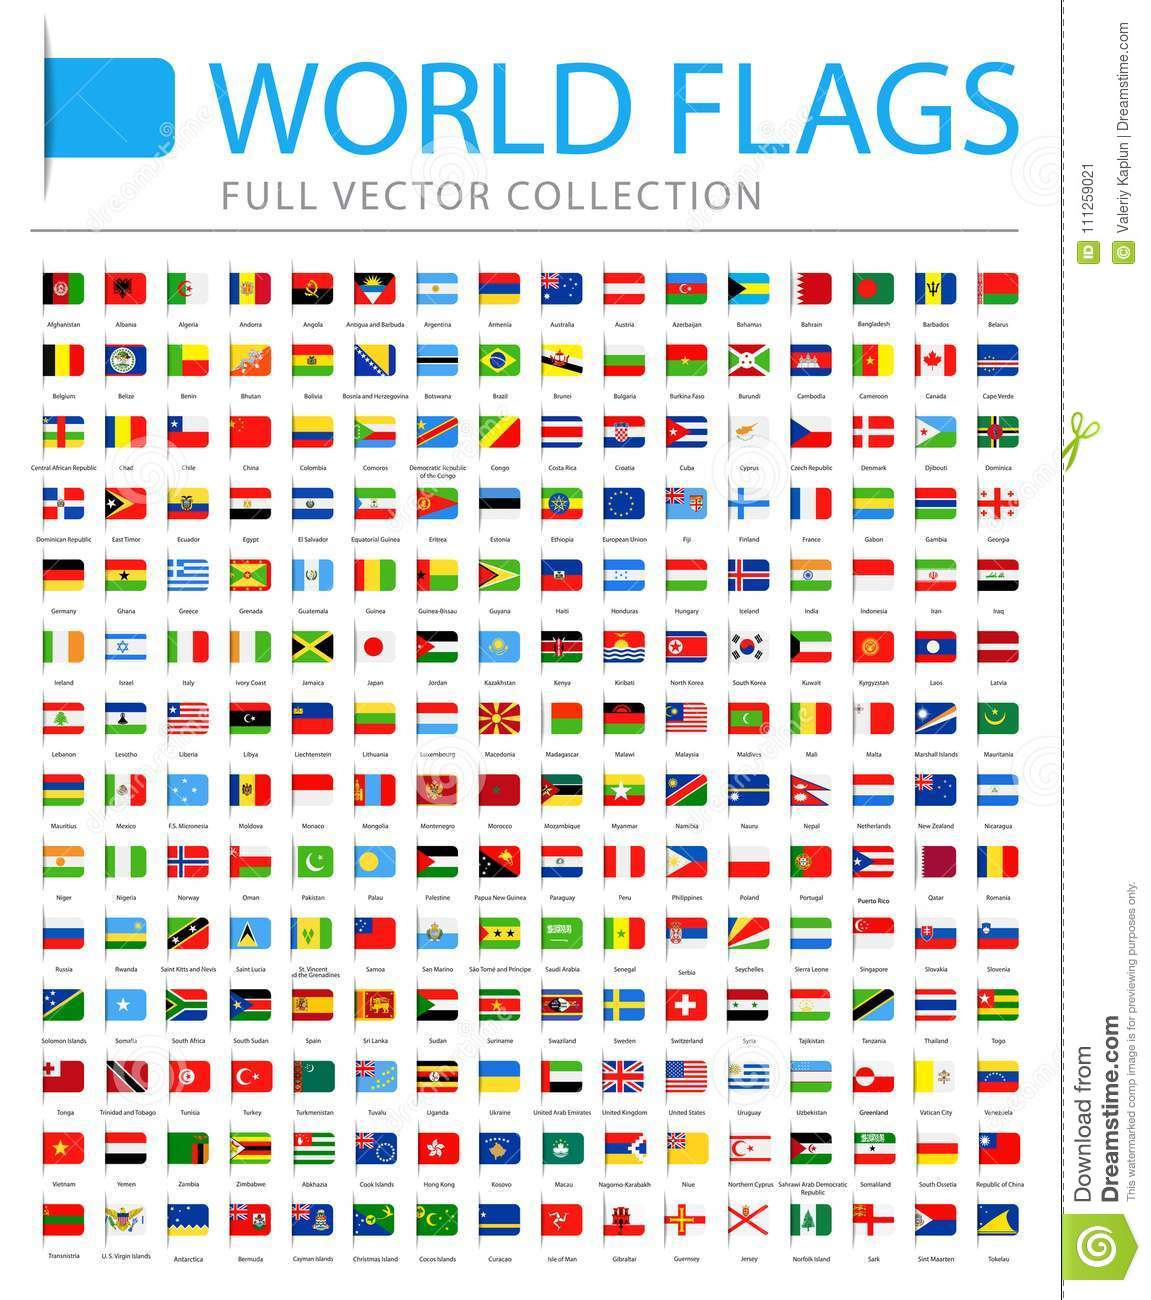 Flags of all countries - flagpedia.net